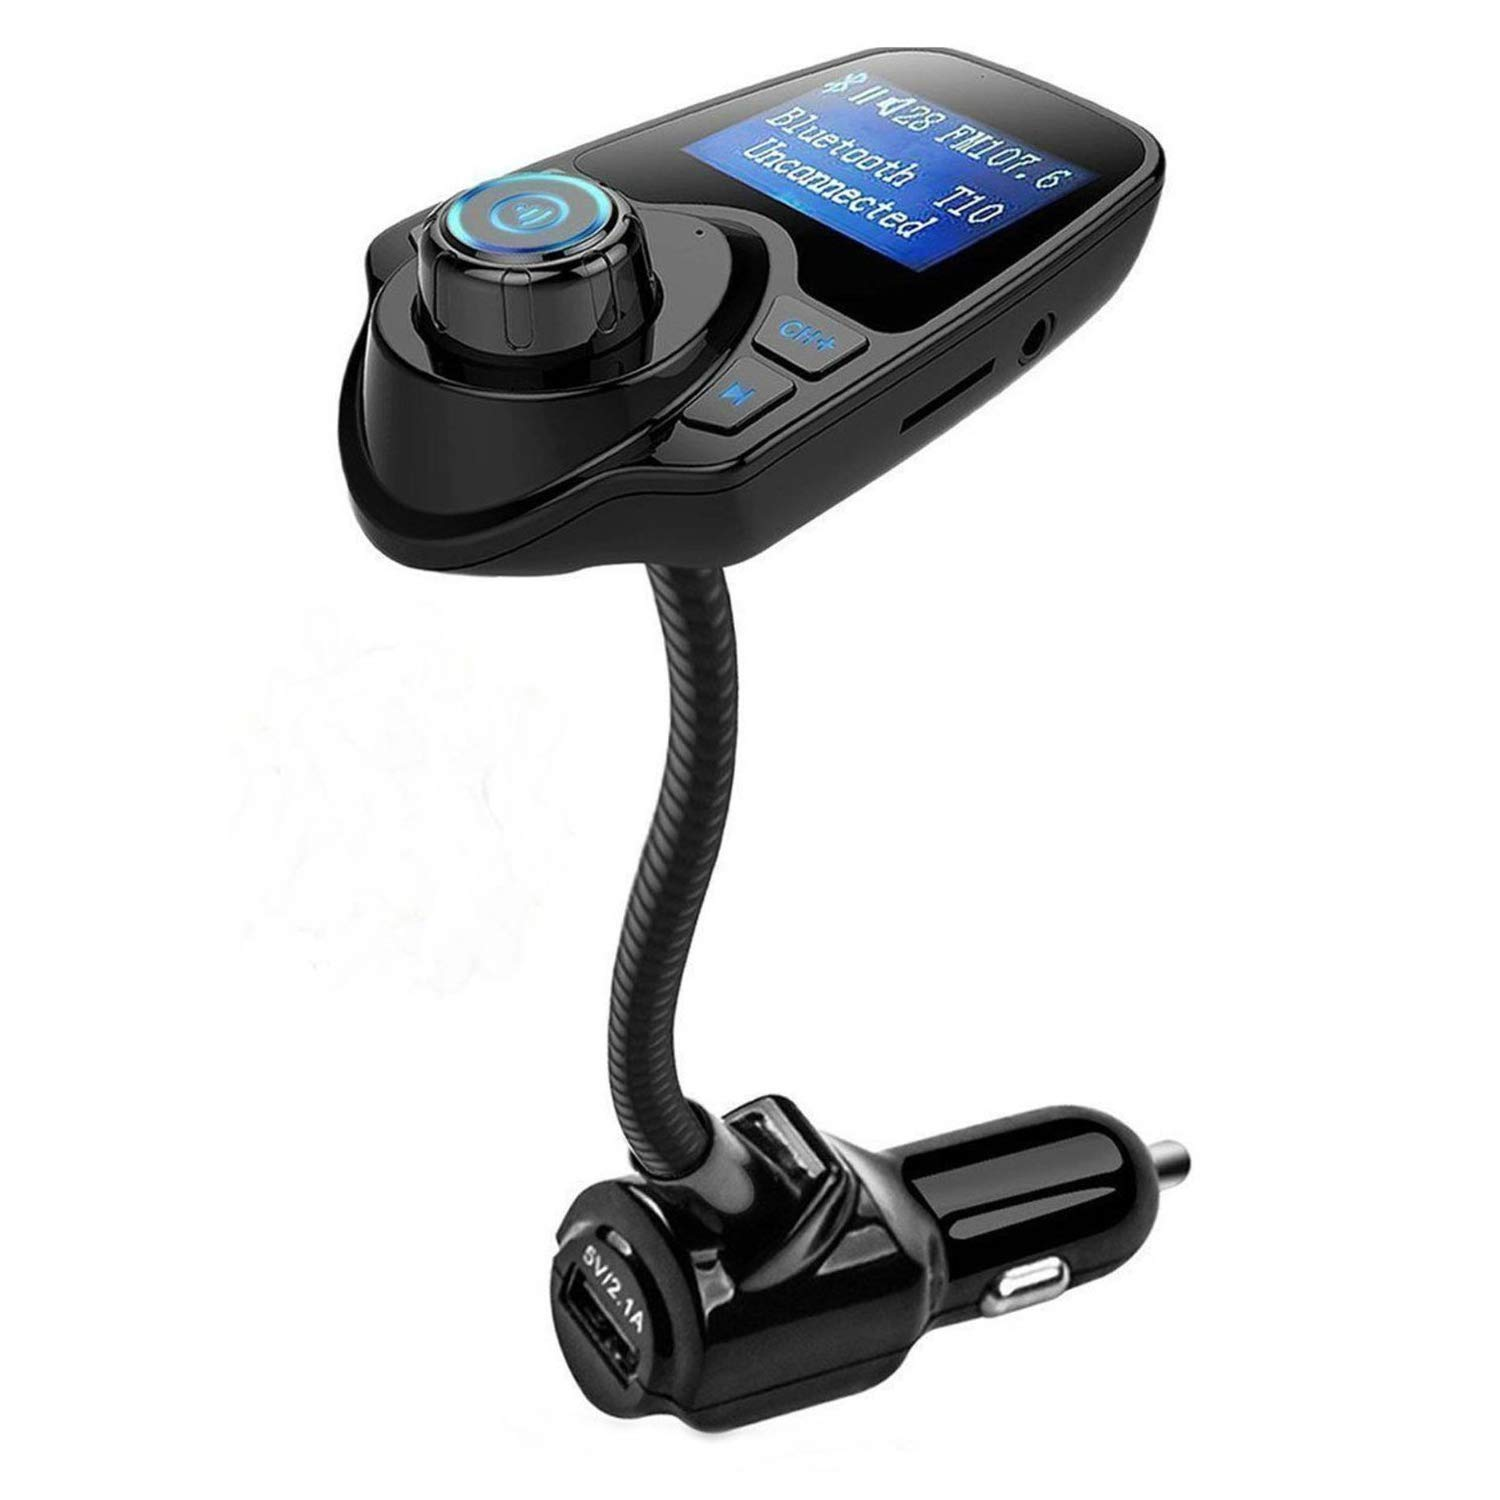 FM Transmitter Ann Bully Wireless Bluetooth FM Transmitter Car Kit Radio Receiver with 5V//2.1A USB Charger Output Support USB Flash Driver and Micro SD Card AUX Output and Input 4352717234